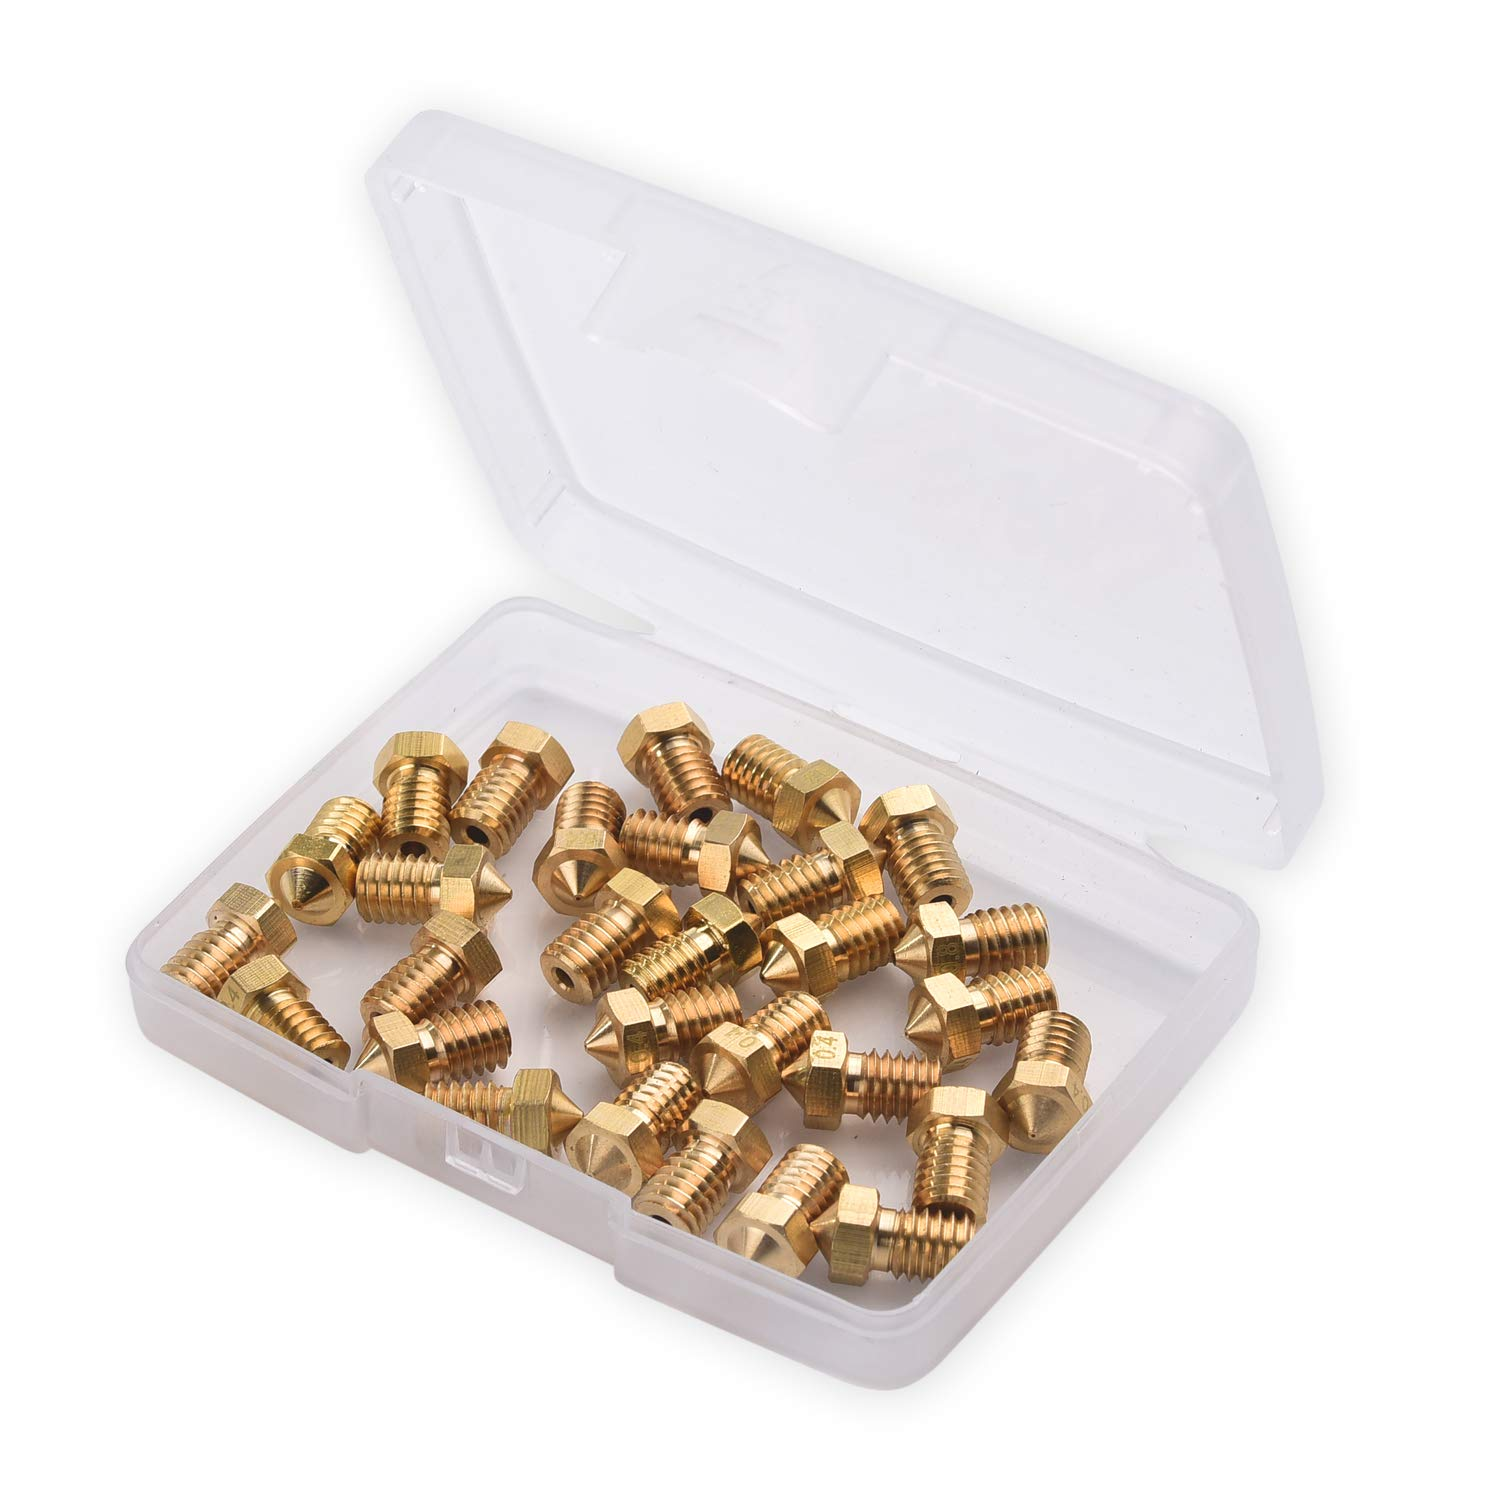 30 Pieces E3D 3D Printer Nozzles 0.6mm 0.5mm 0.3mm Wellerly 0.2mm 1.0mm M6 3D Printer Nozzle Extruder Print Head with Free Storage Box for E3D-V5 V6 Makerbot 0.4mm 0.8mm